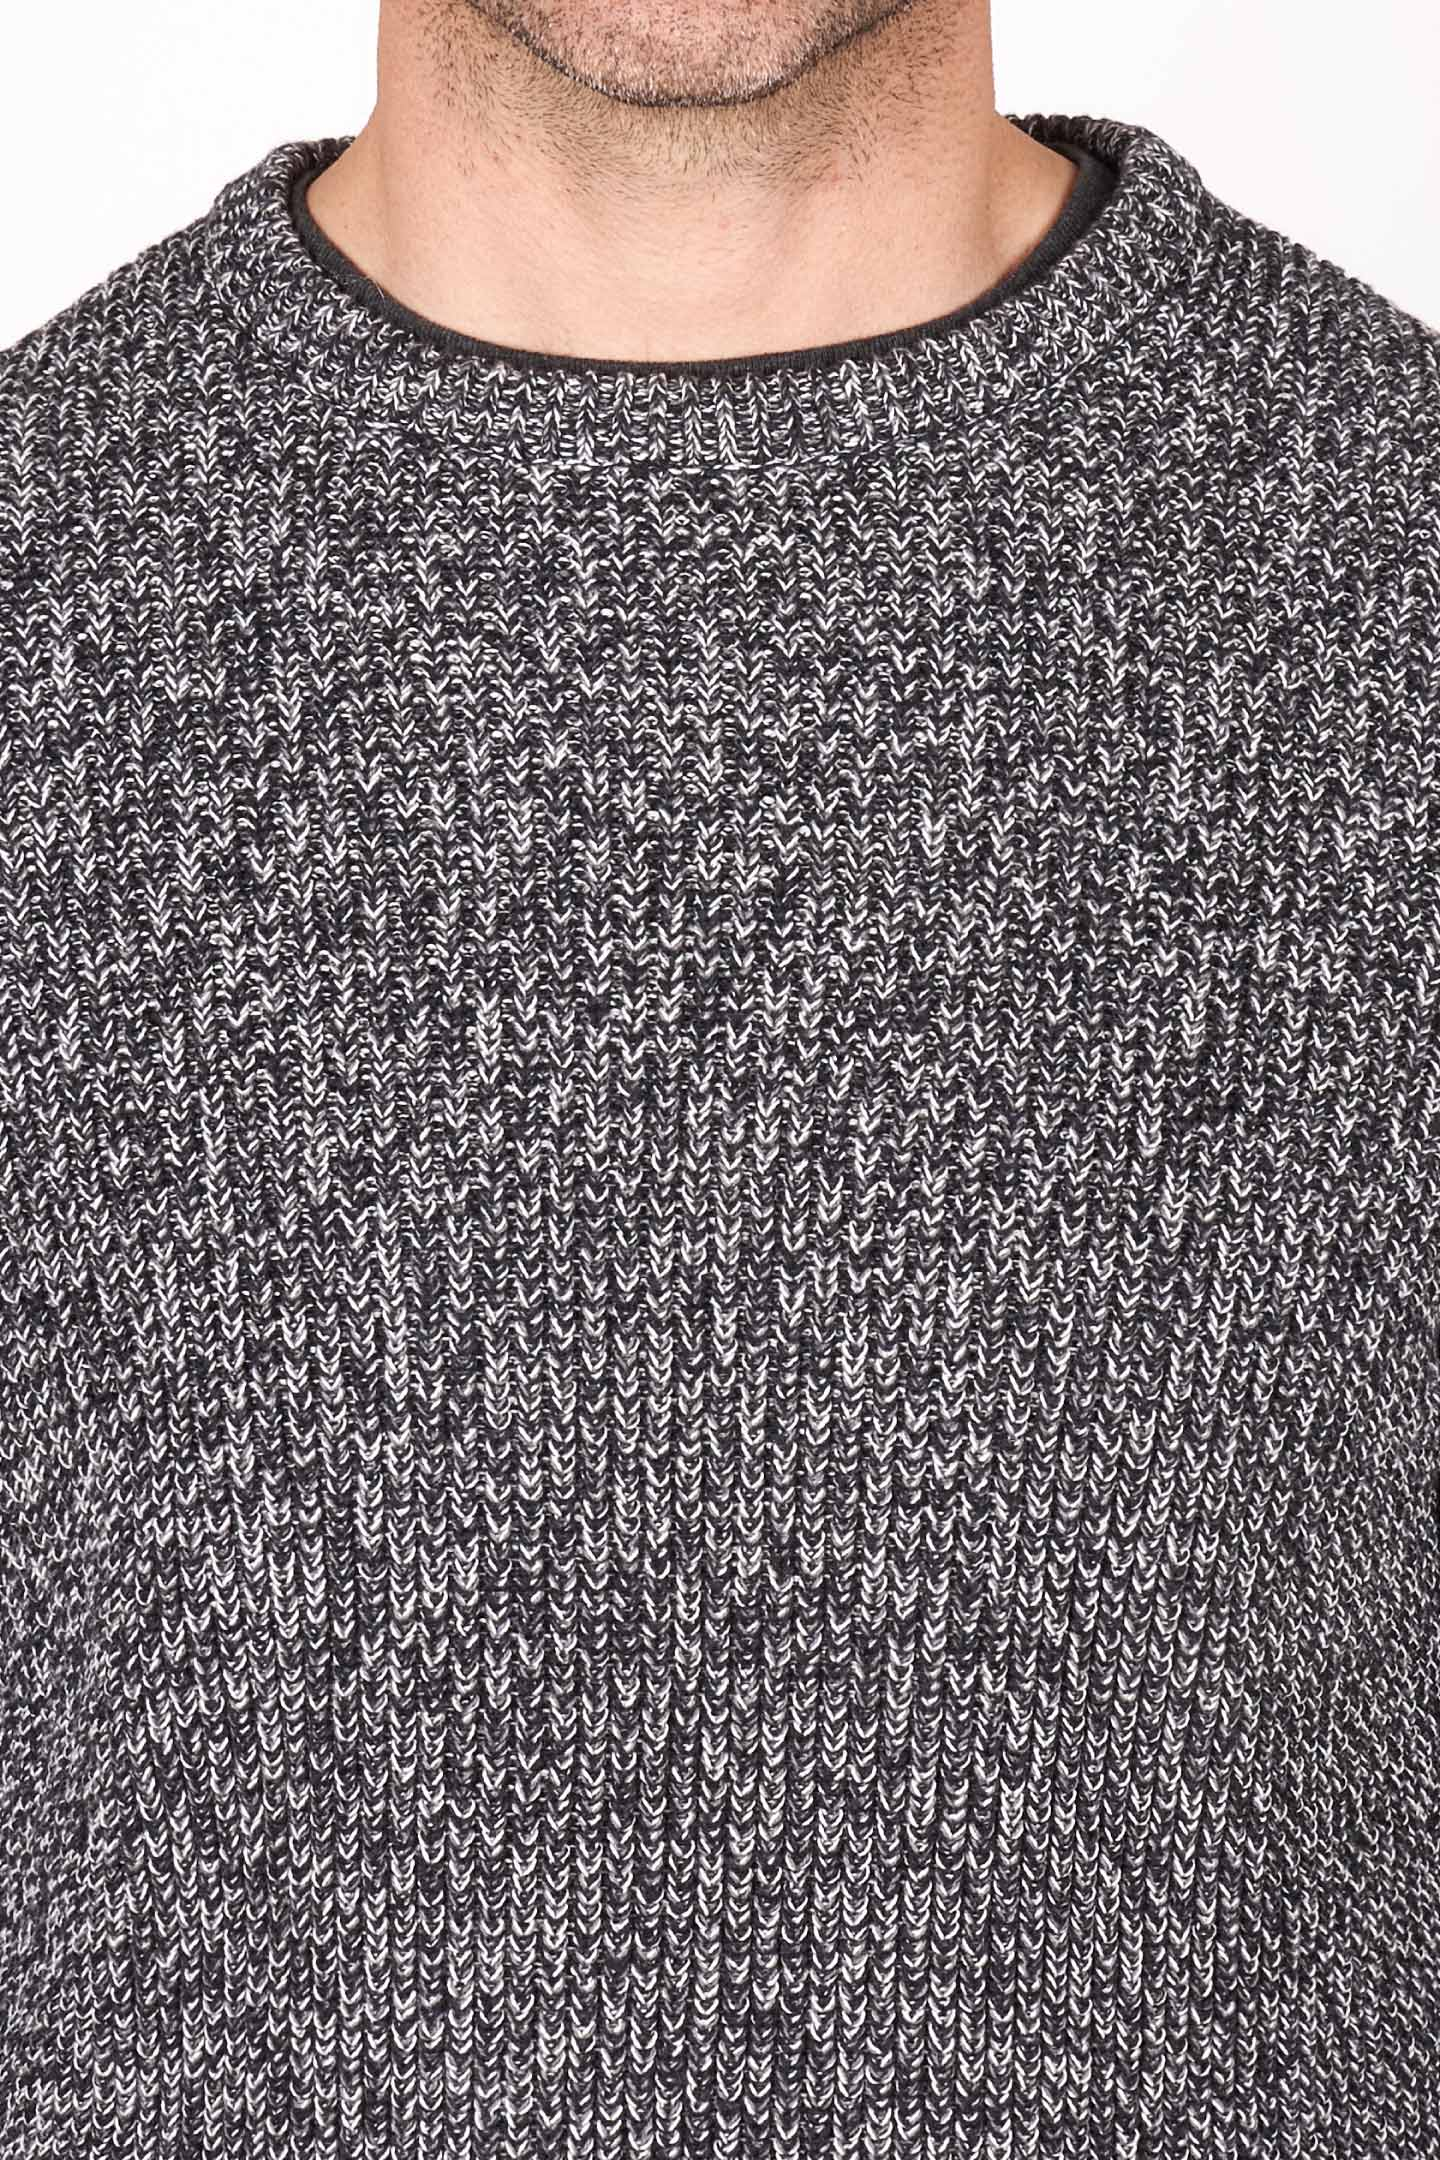 Buy Fog Grey Knit Sweater for Short Men | Ash & Erie   Sweaters